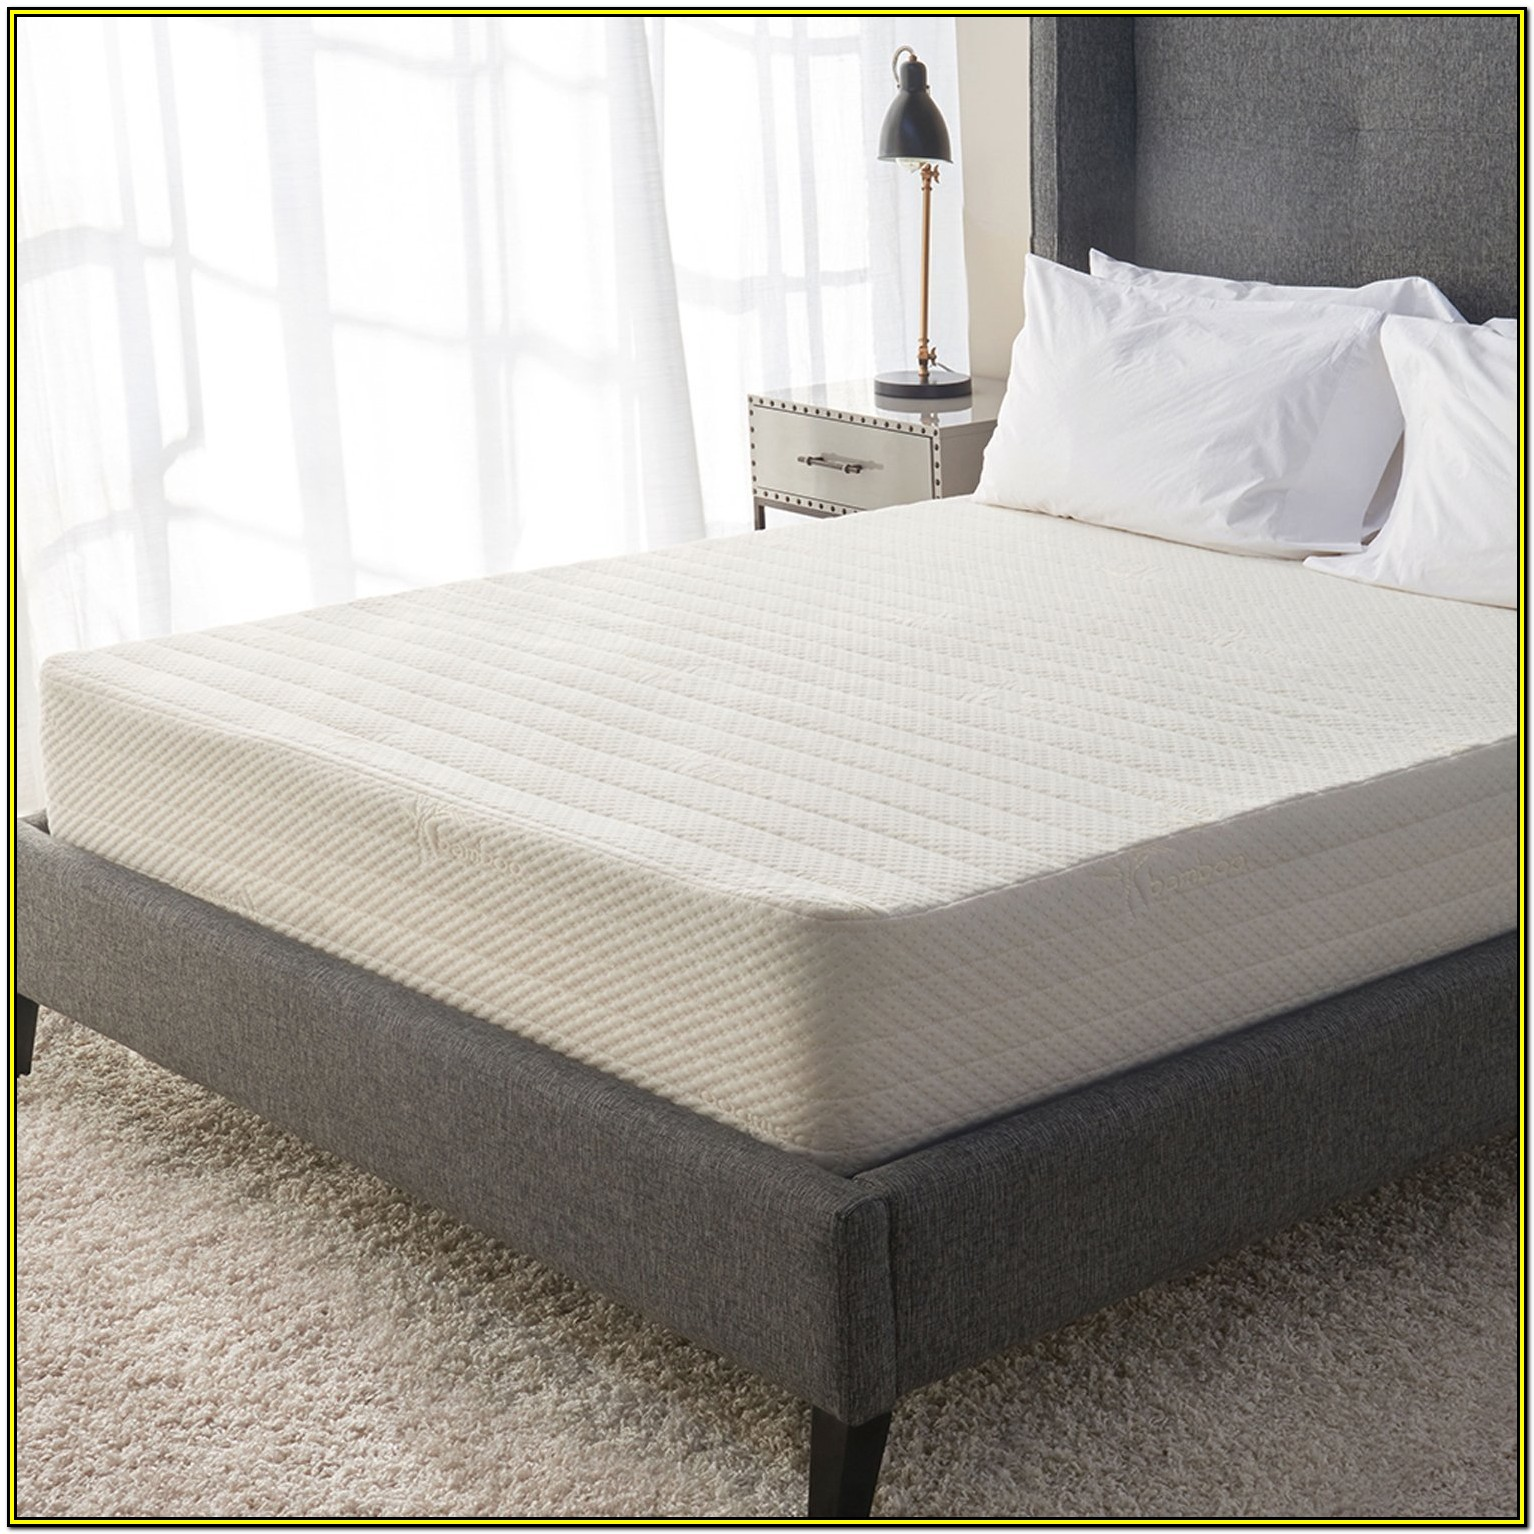 Best Bed For Side Sleepers With Lower Back Pain